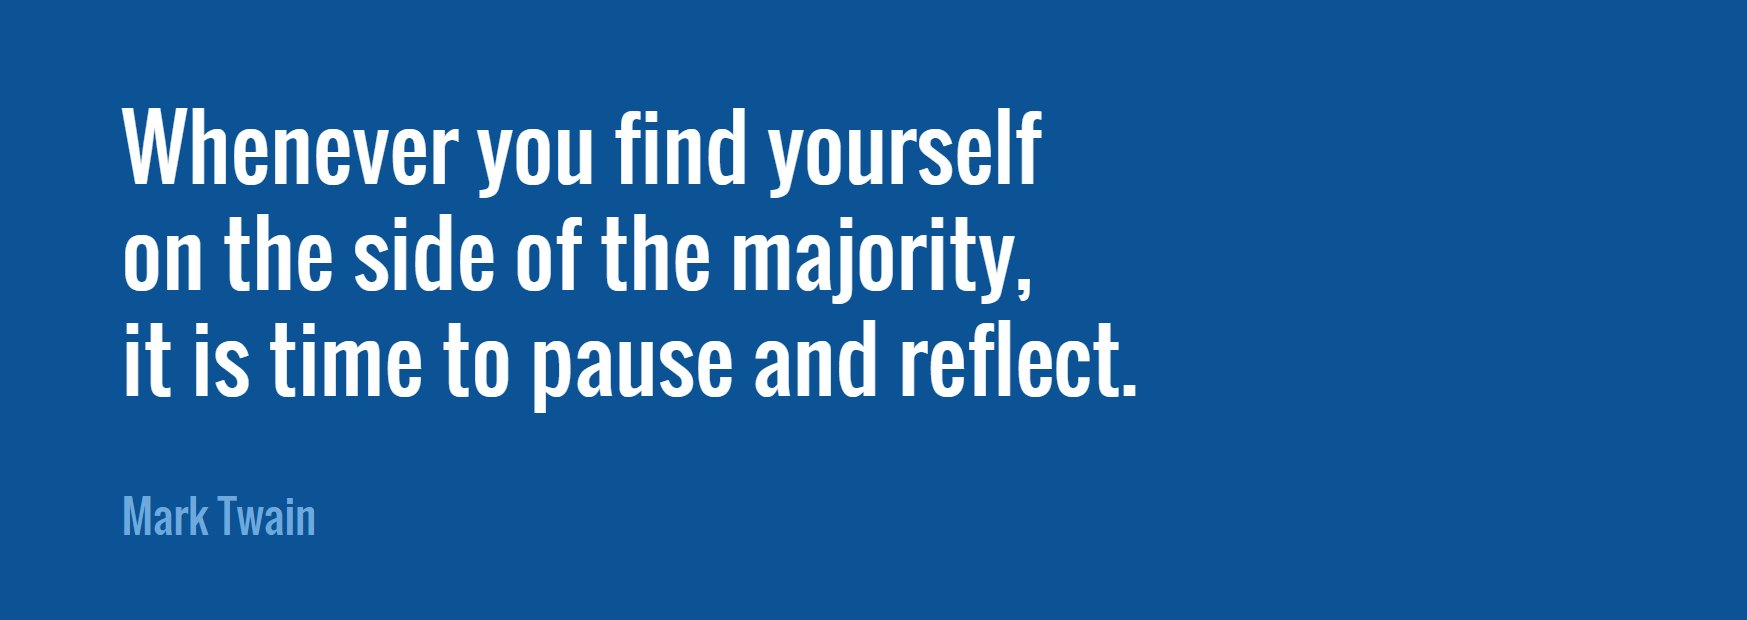 Mark Twain quote - Whenever you find yourself on the side of the majority, it's time to pause and reflect